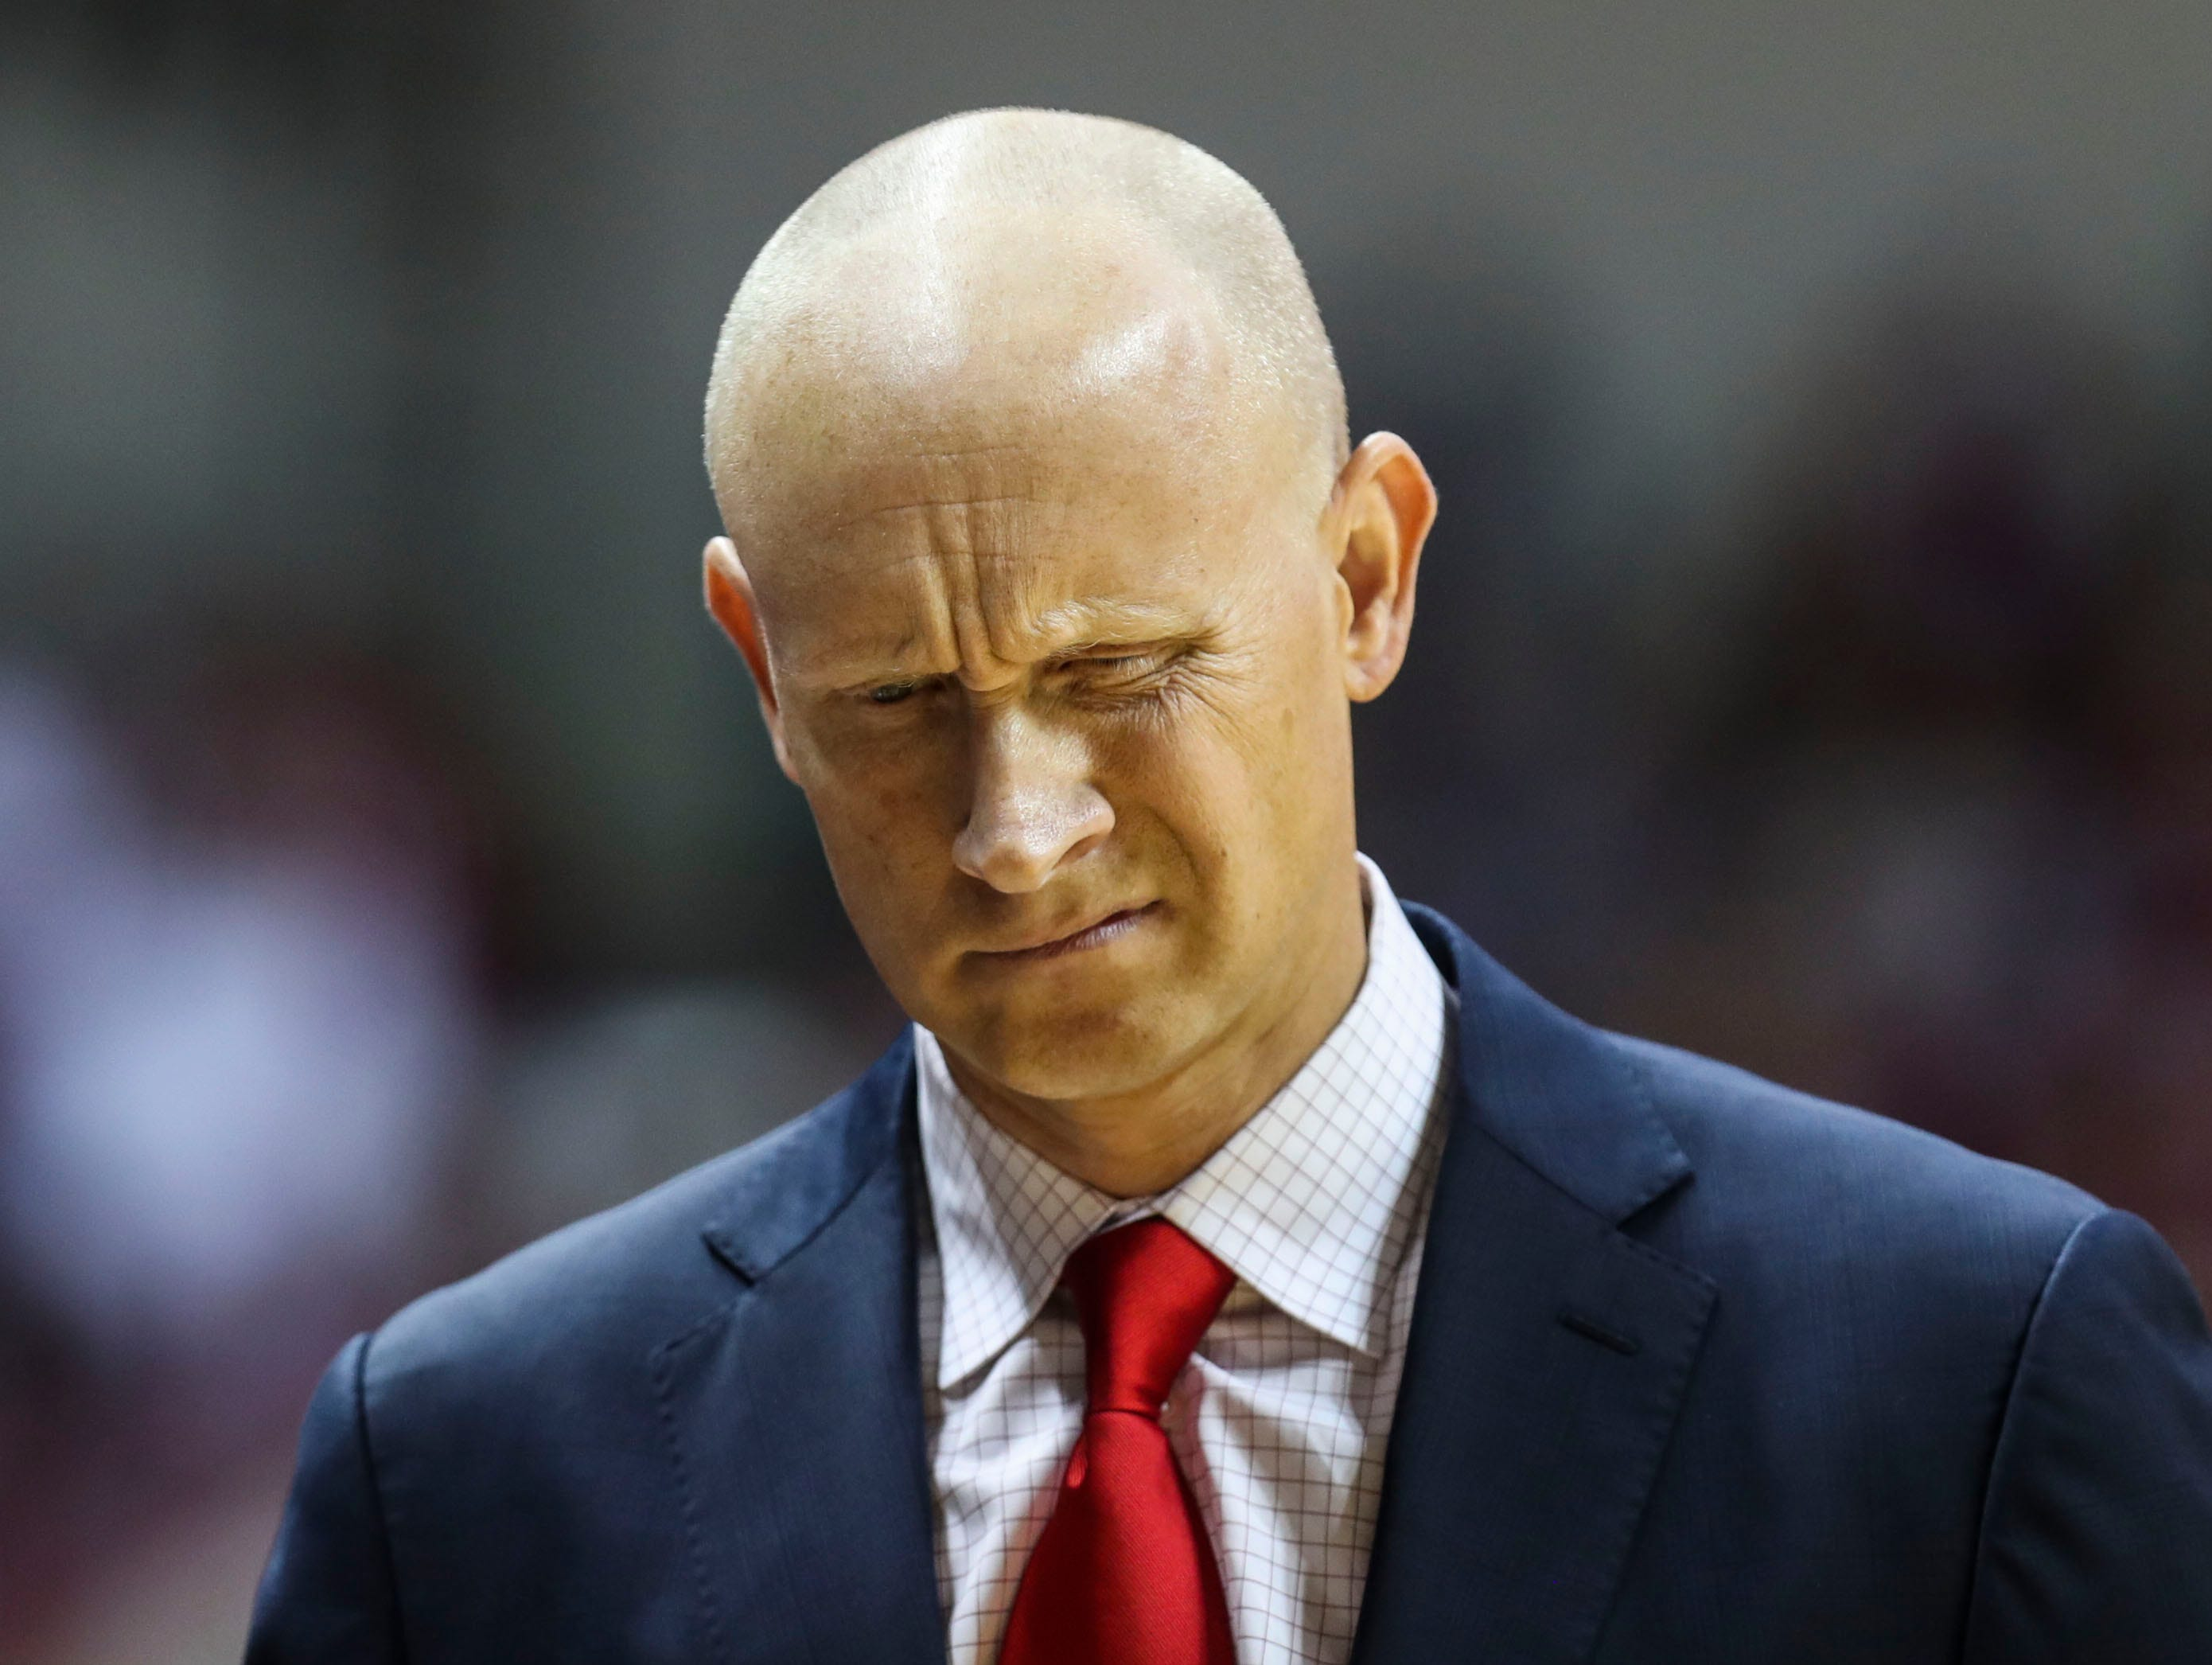 Louisville's Chris Mack reacts during the game against Indiana Saturday, Dec. 8, 2018.